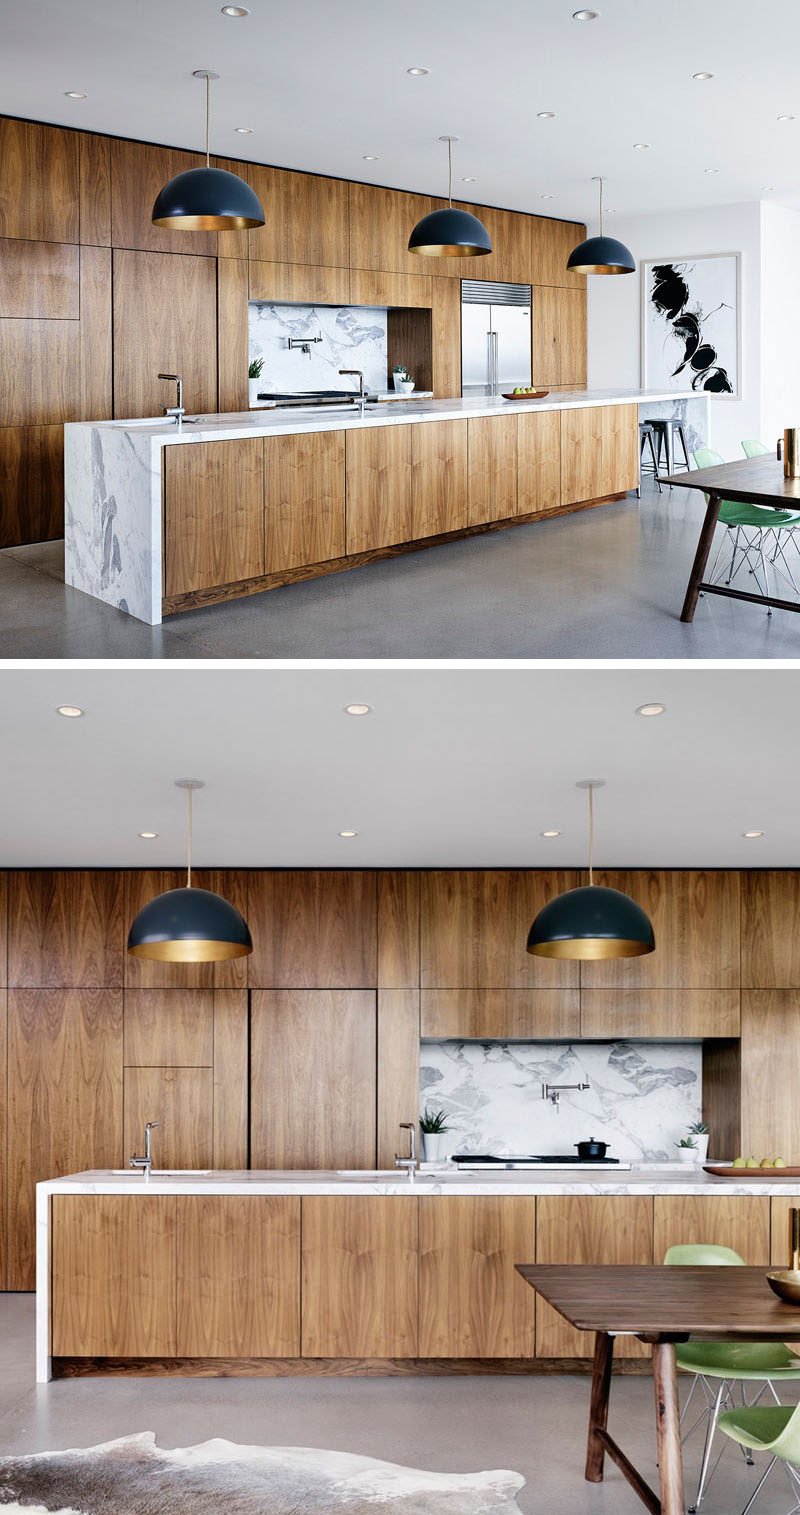 Polished concrete floors together with white walls give this kitchen a modern, clean feel that's warmed up by the American black walnut covering the cabinets on the wall and on the island. The marble countertops and backsplash add a luxurious touch to the warm wood, and pendant lighting above the island helps brighten the space once the sun goes down.